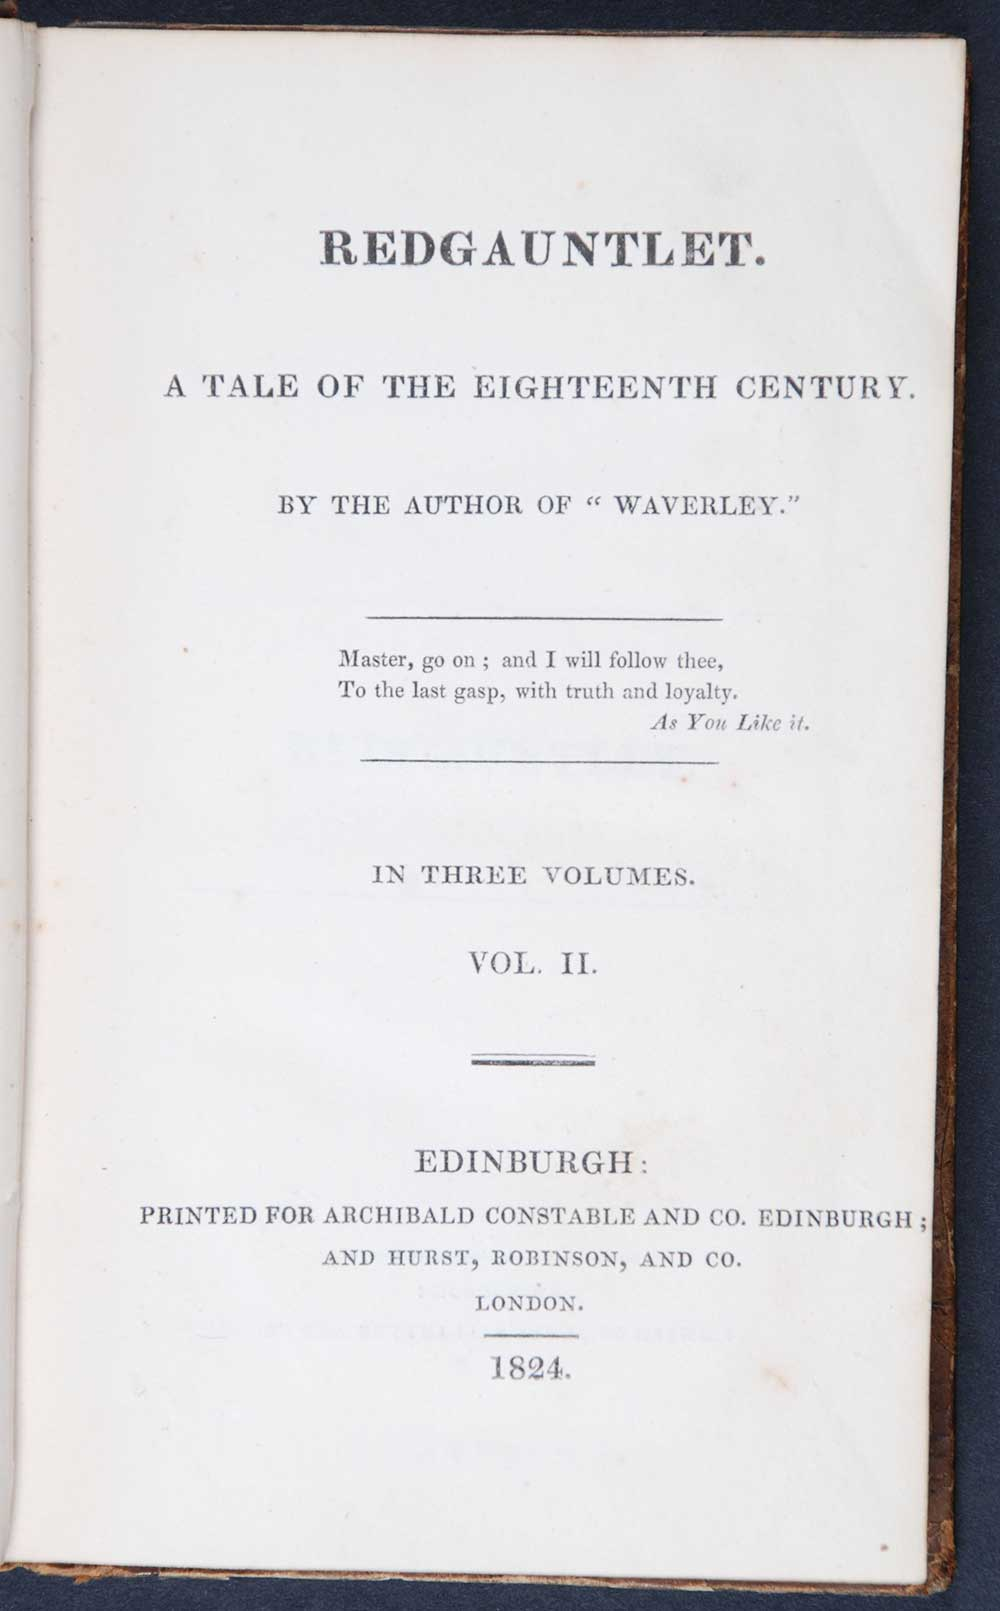 [Sir Walter Scott]. <em>Redgauntlet: a tale of the eighteenth century.</em> [1st edition]. Edinburgh: Printed for Archibald Constable and Co., Edinburgh; and Hurst, Robinson and Co., London, 1824. Three volumes; Vol. 2 displayed.